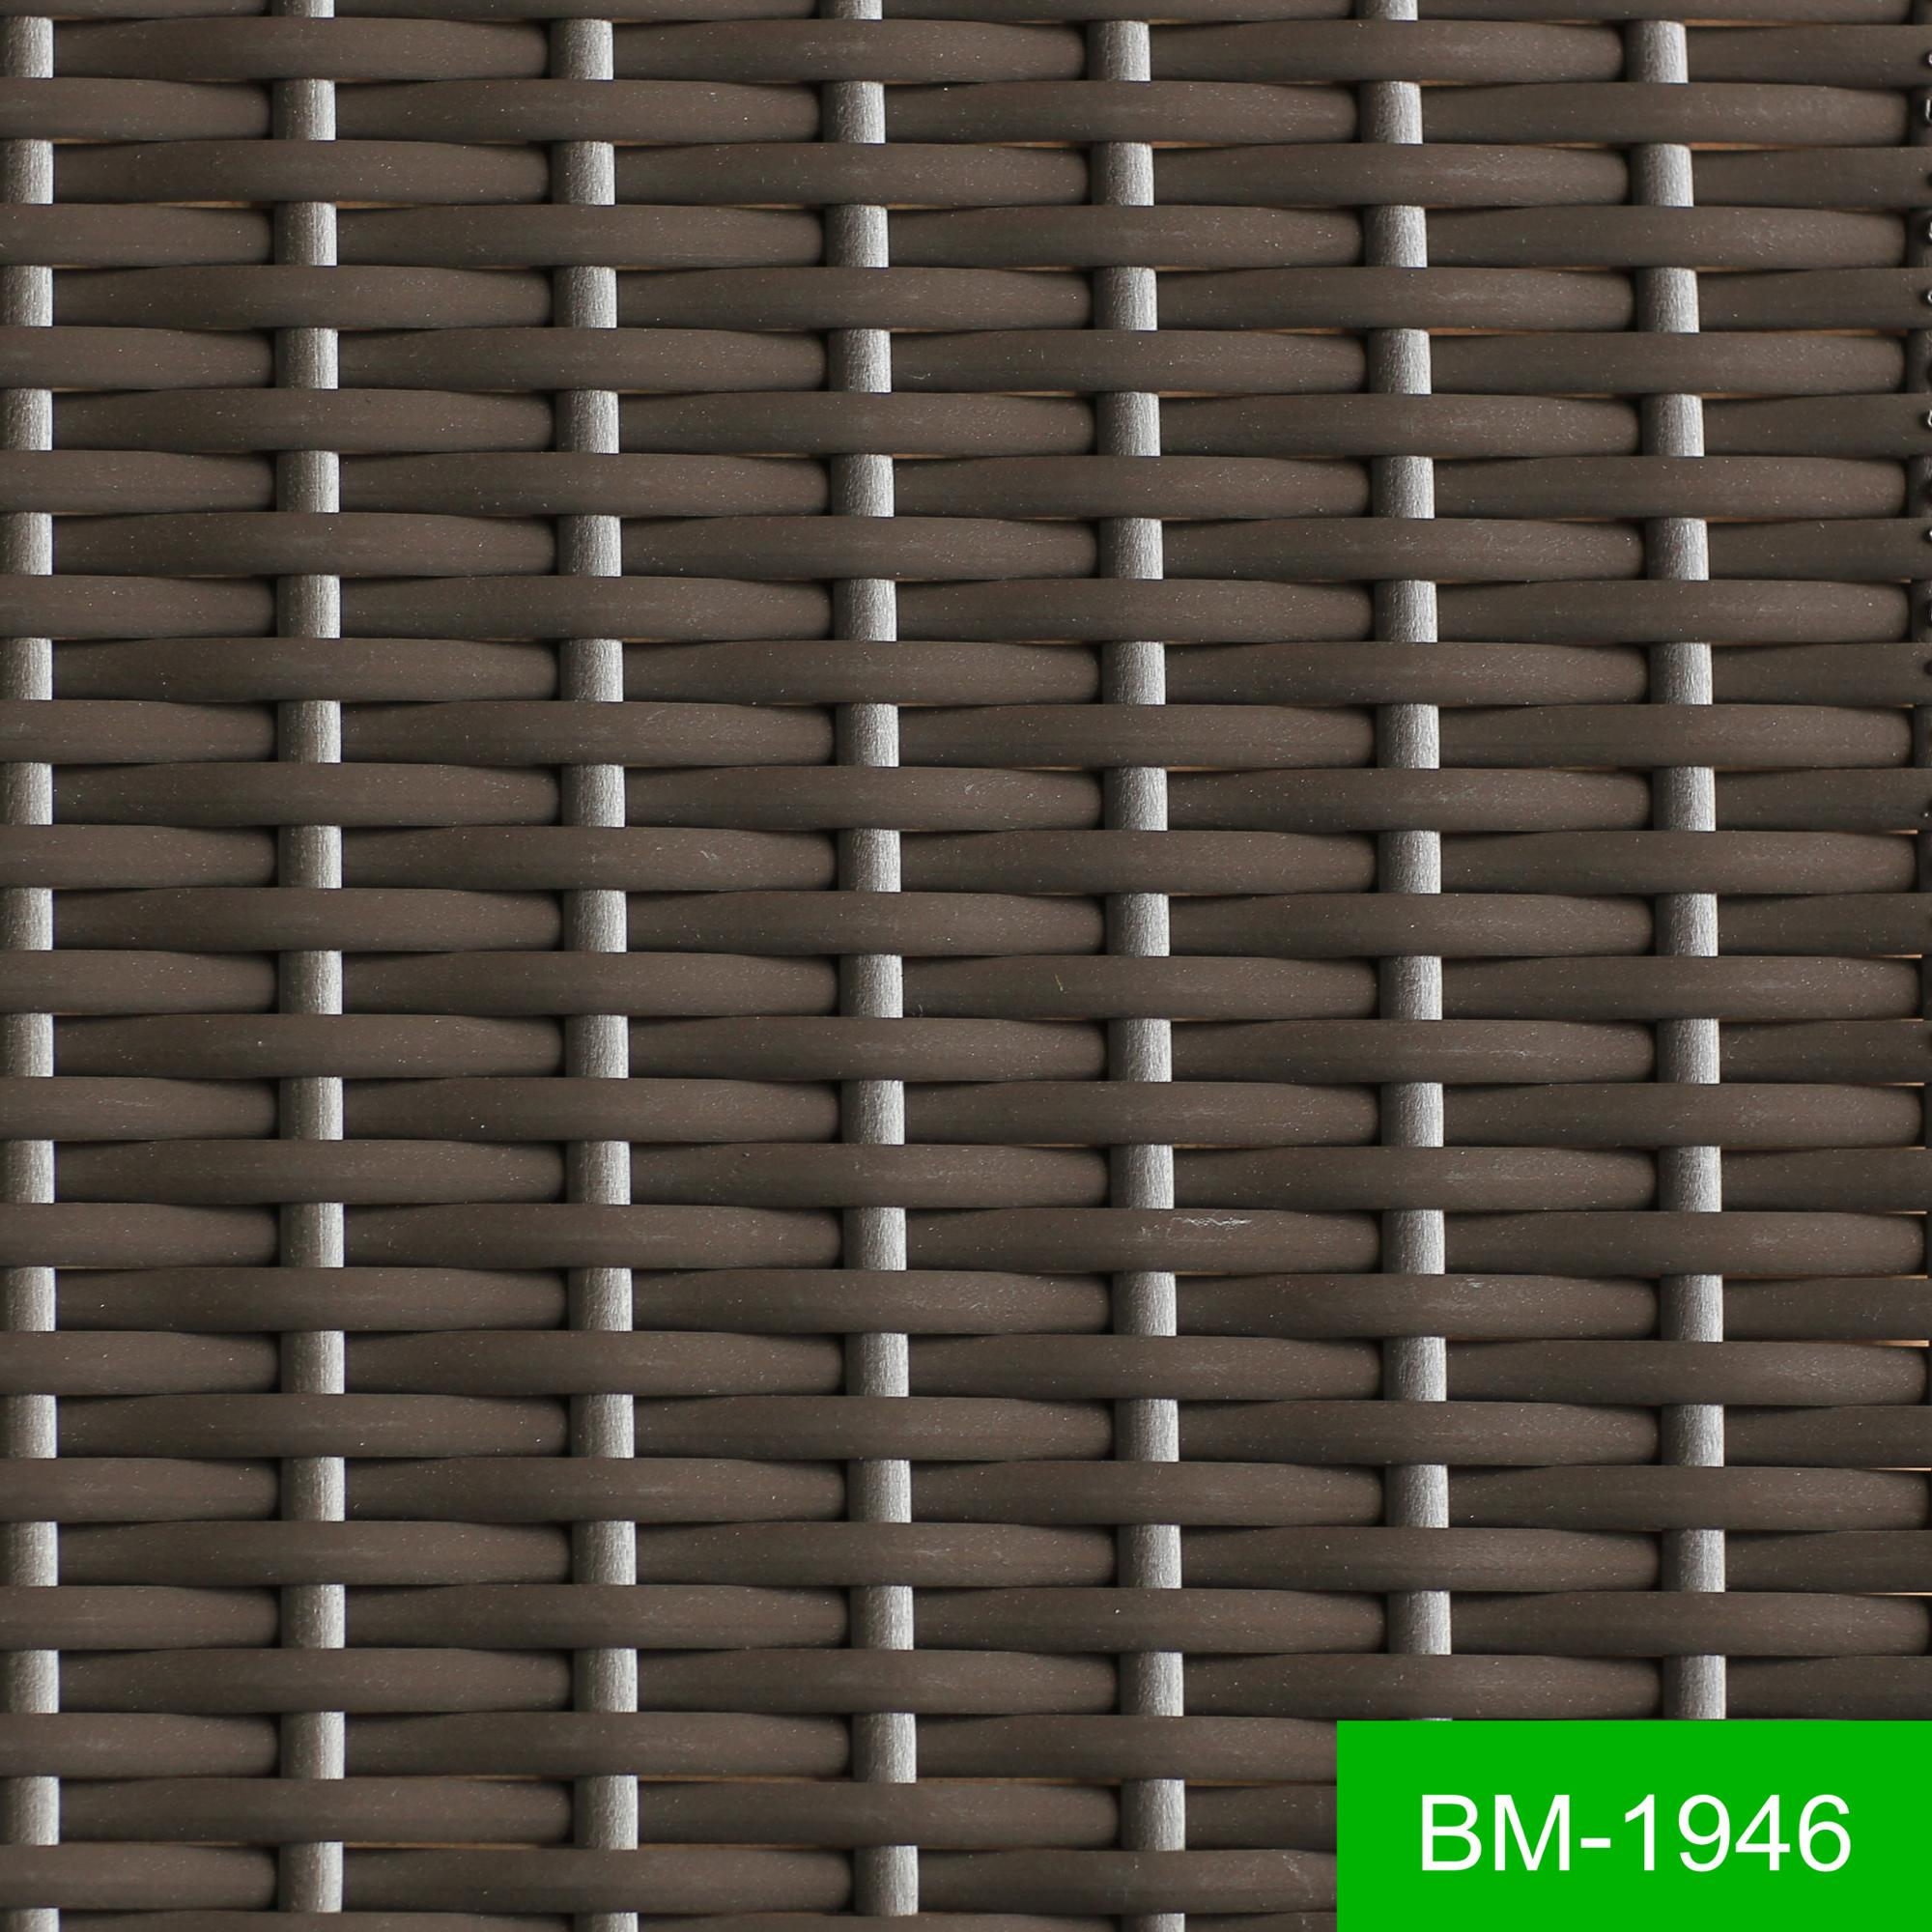 Rattan Rollo Home Decorative Rattan Wall Panel Buy Rattan Wall Panel Wall Paneling Building Material Product On Alibaba